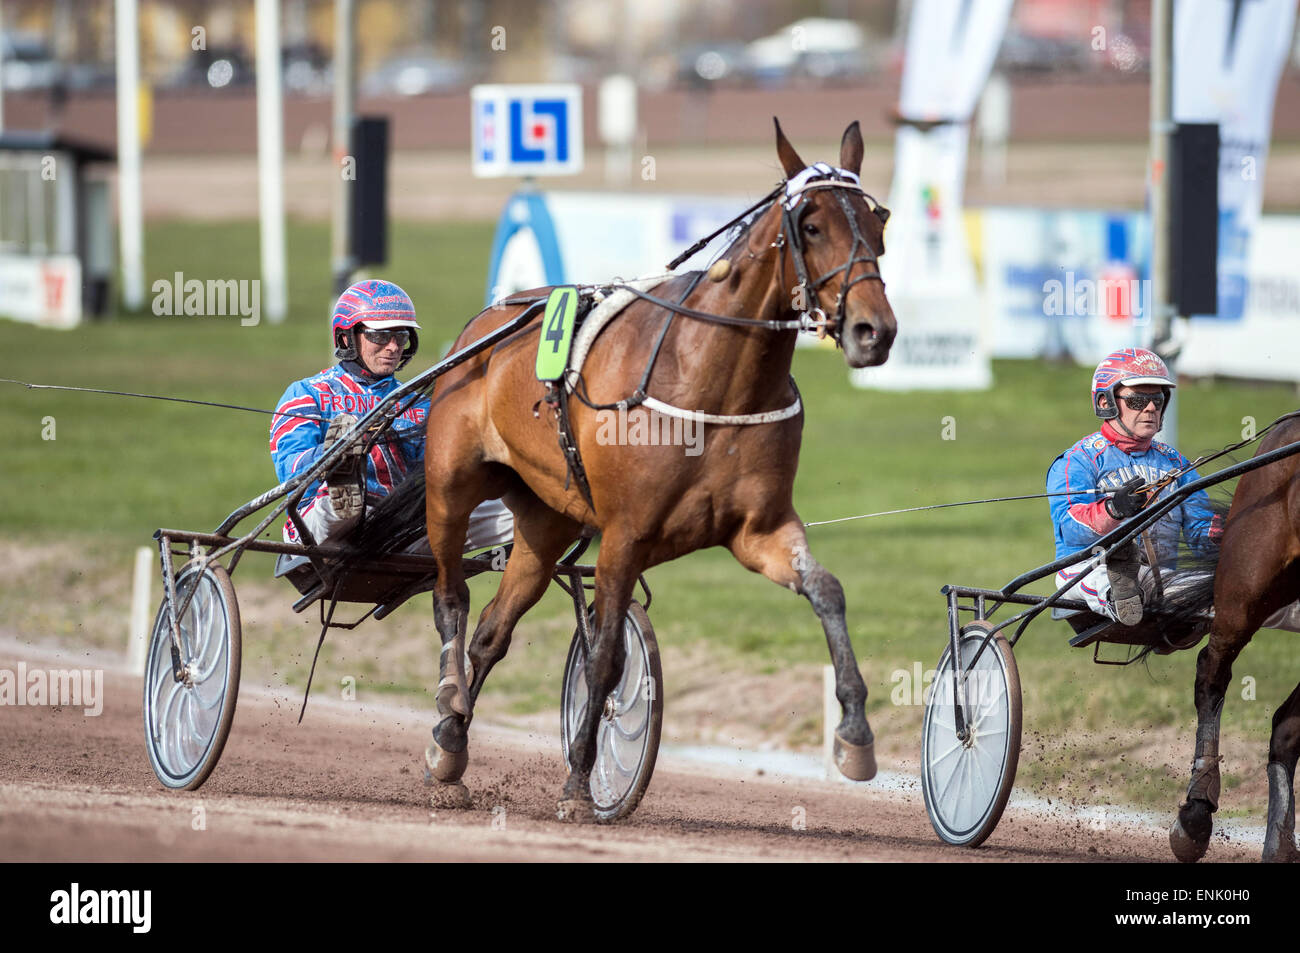 Harness drivers Tomas Pettersson (left) and Torbjörn Jansson preparing horses for a race at Mantorp harness - Stock Image